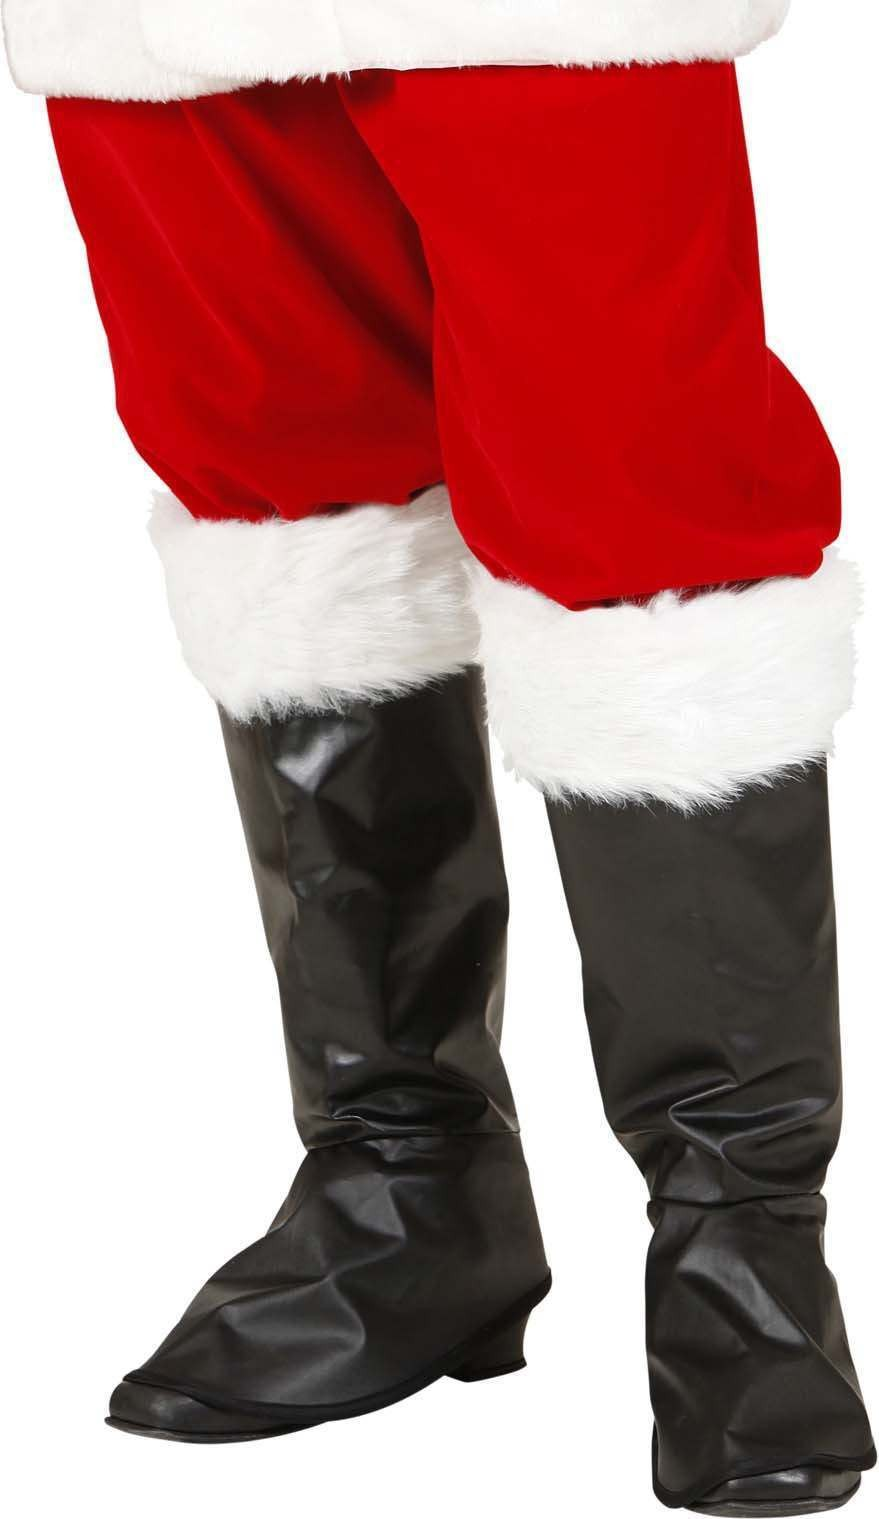 Mens Santa Claus Boot Covers Christmas Accessories - (Black)